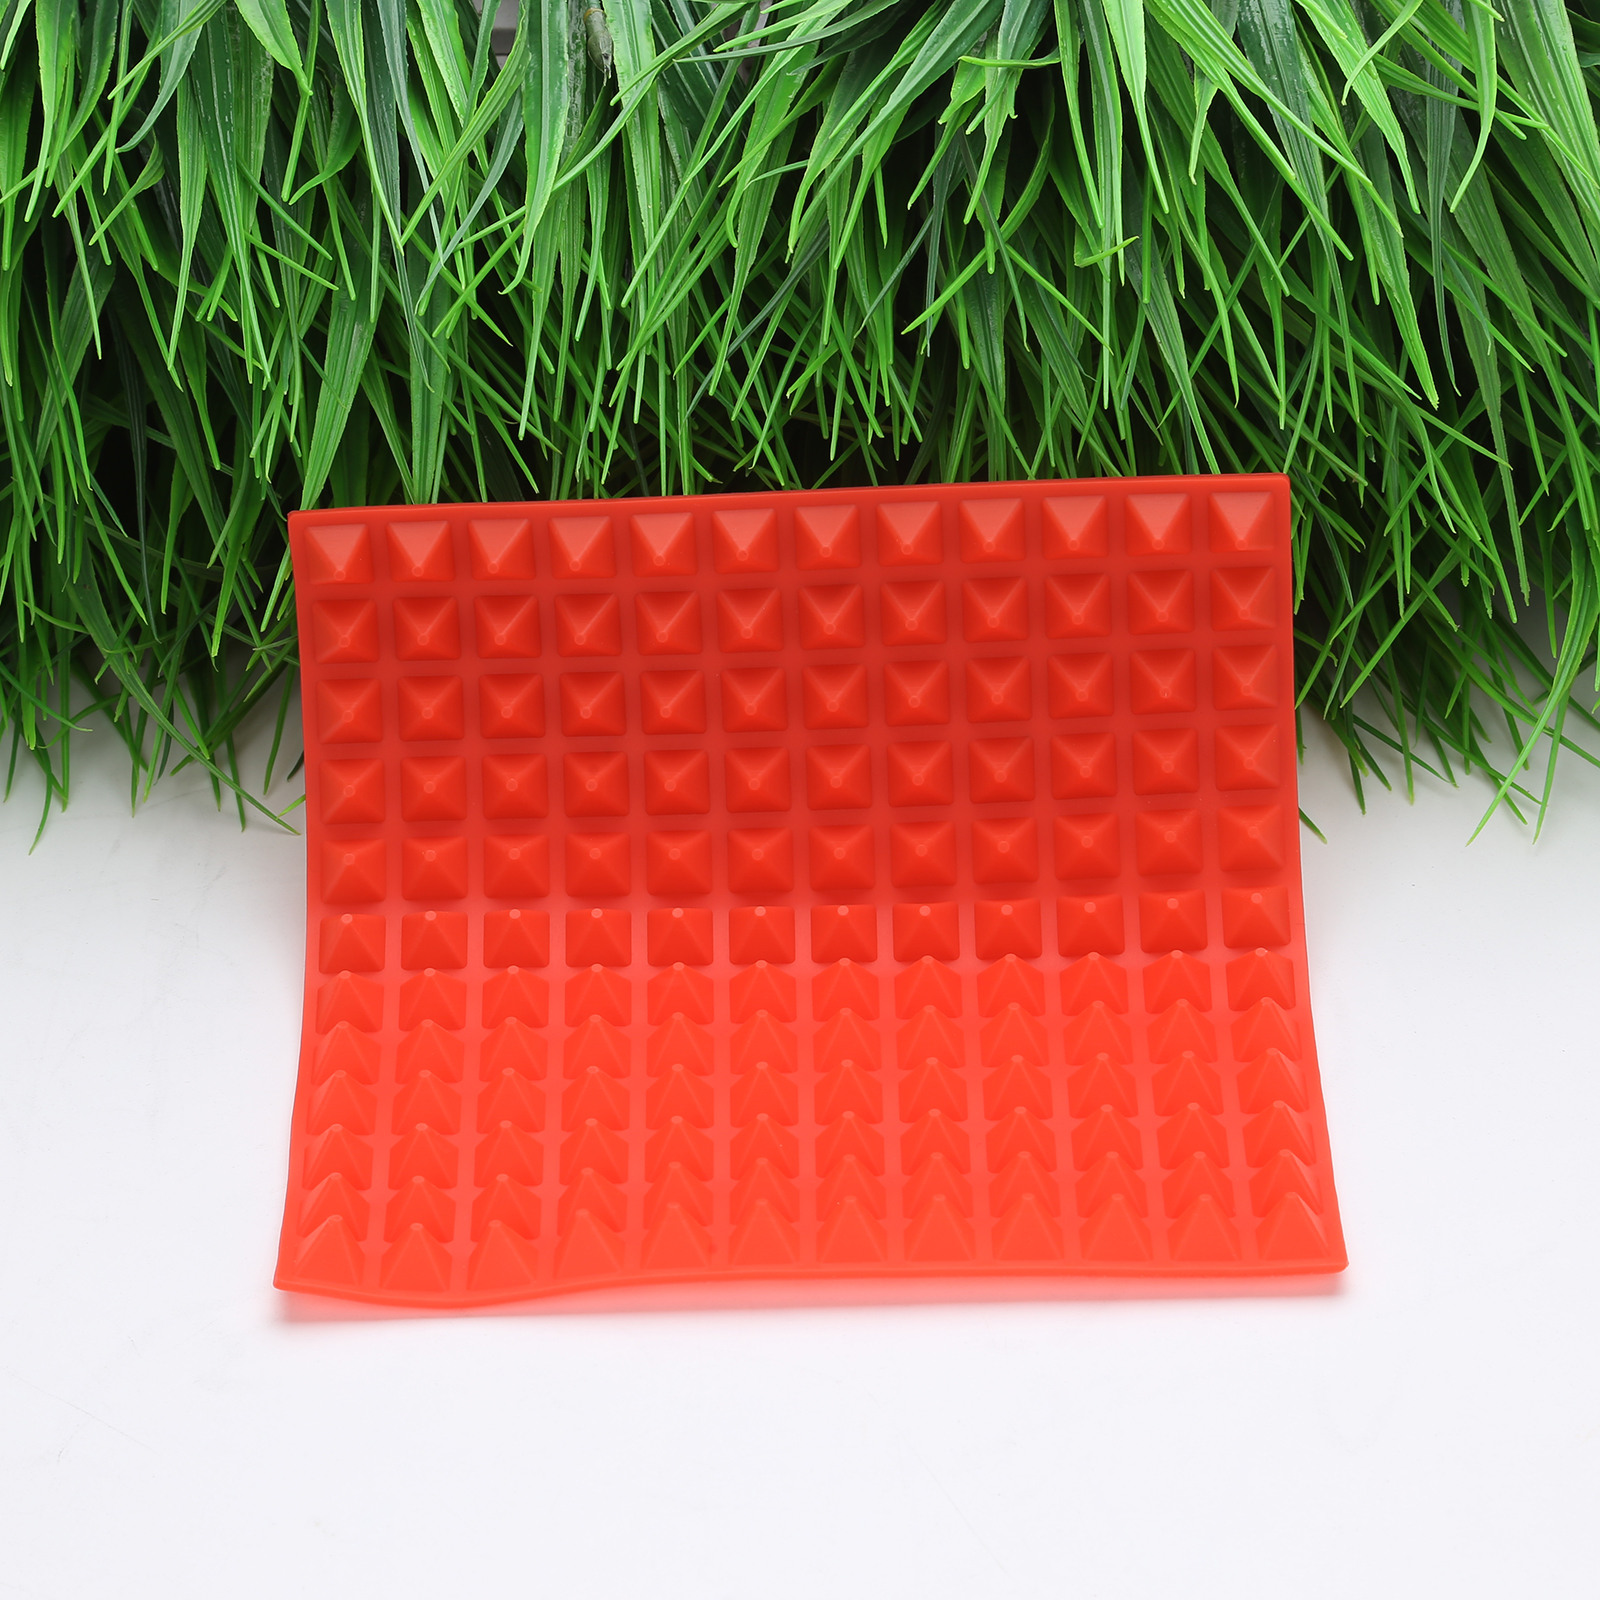 3 Colors Silicone Baking Mat In Non Toxic And High Temperature Resistance For Chocolate And Jelly Pudding 5